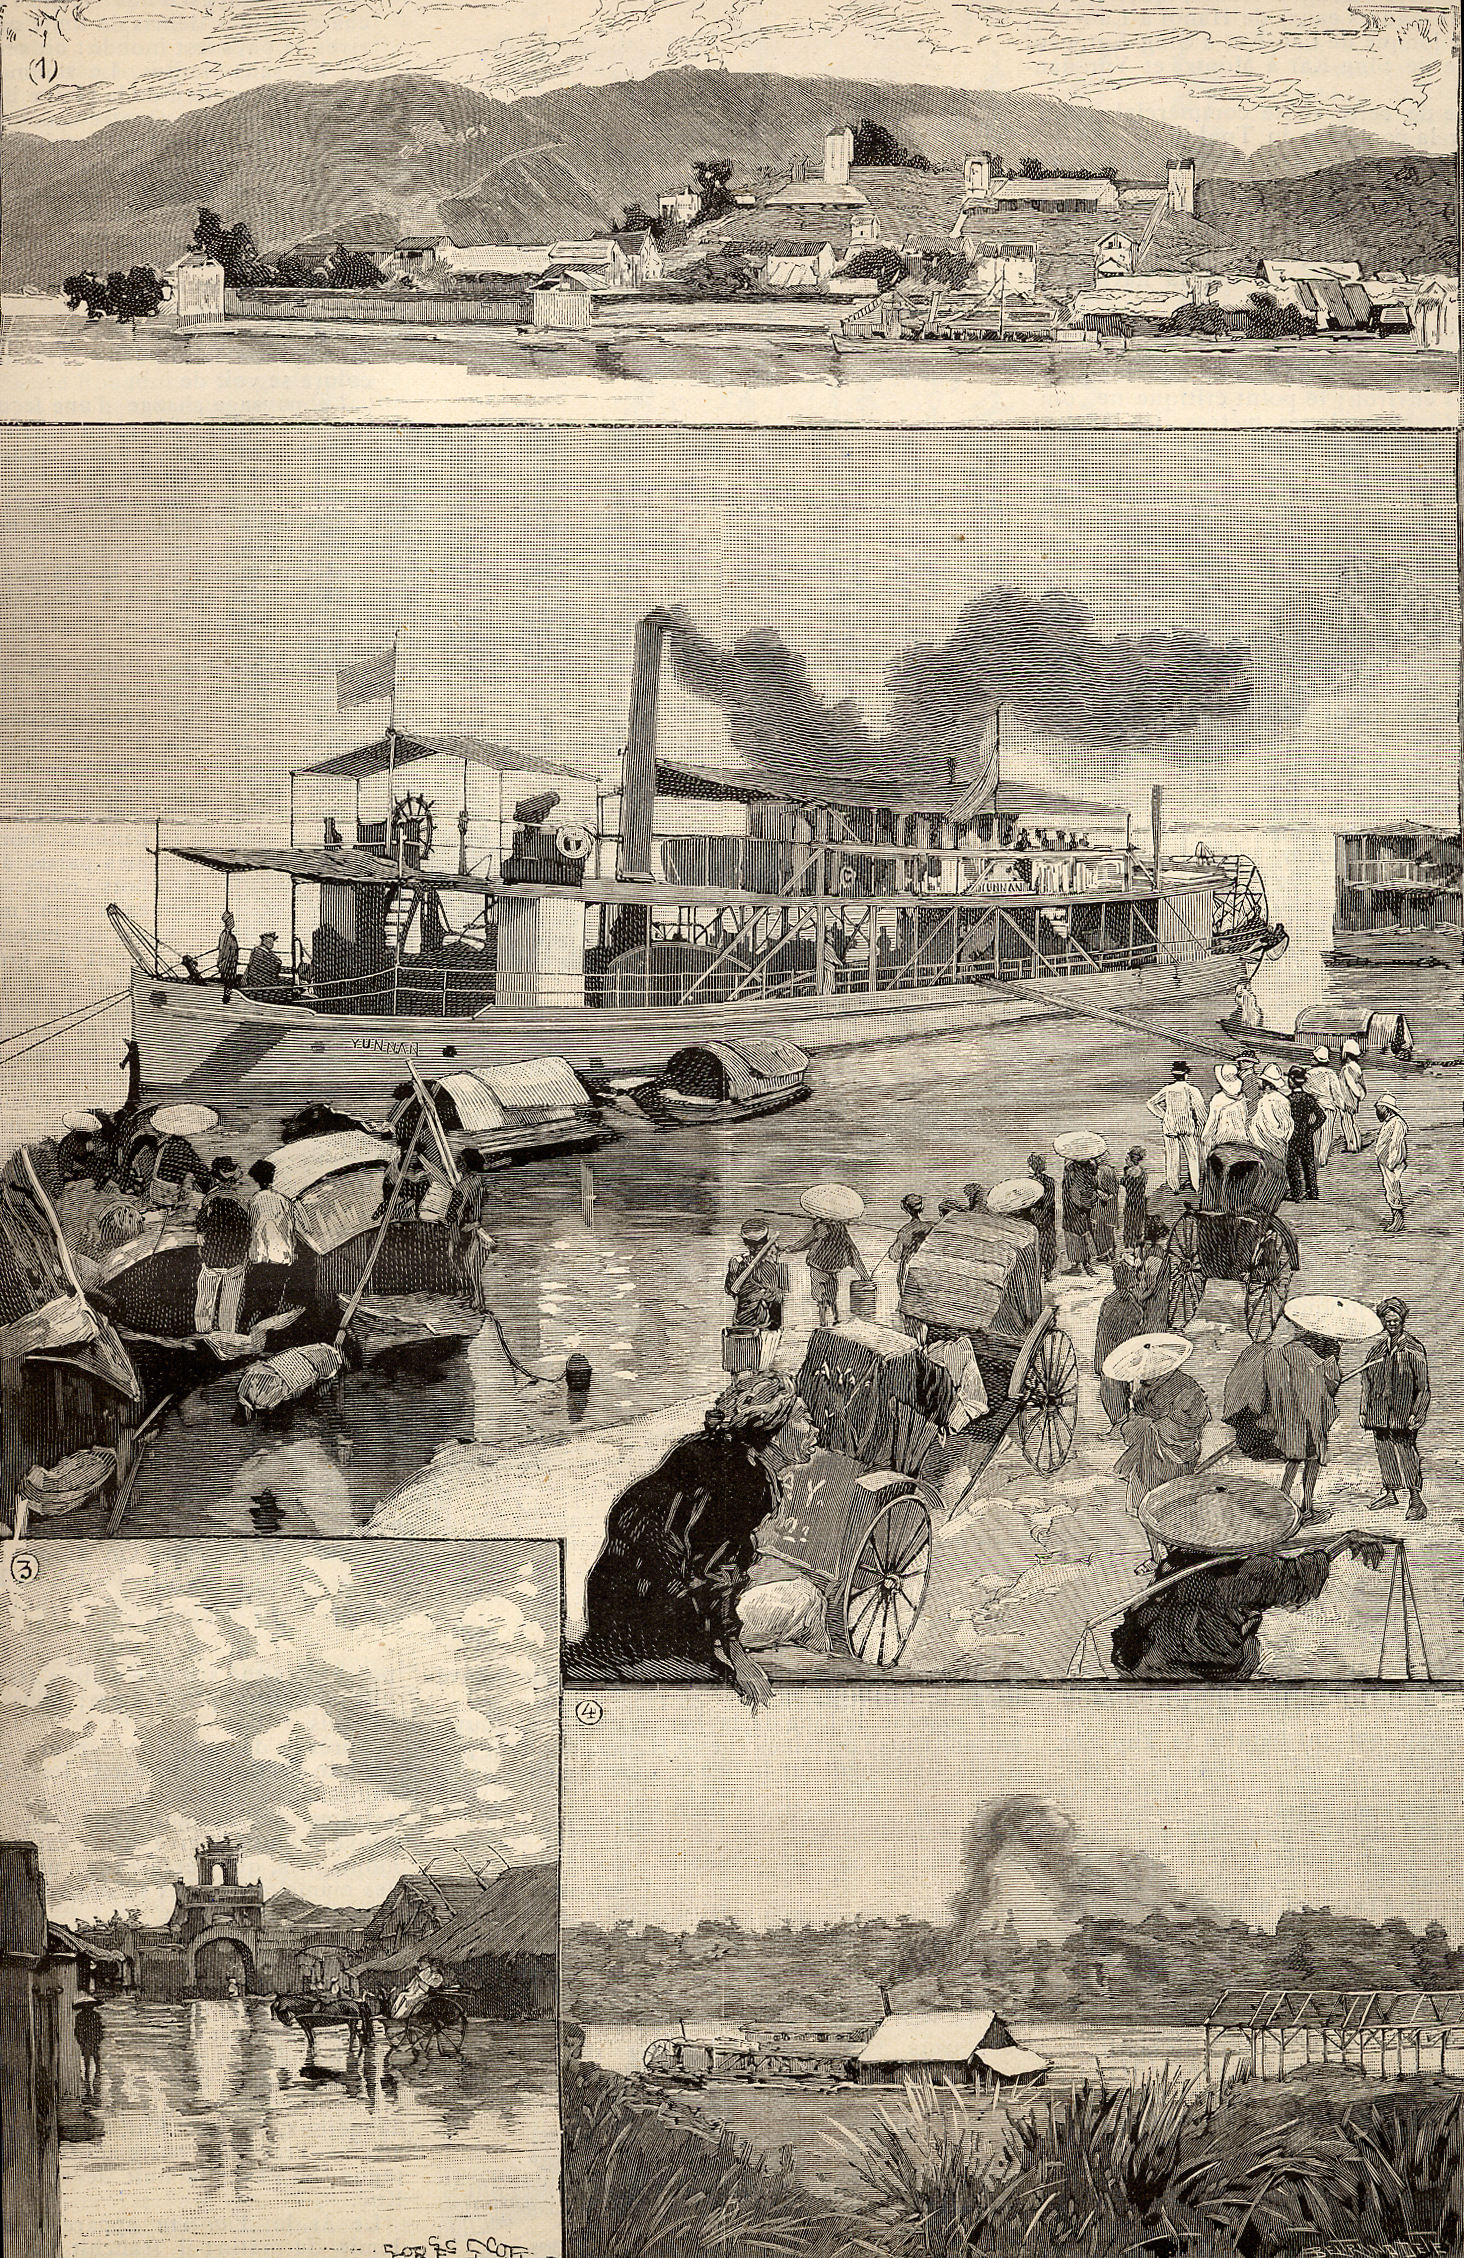 French colonies in 1891 (from Le Monde Illustr ). 1. Panorama of Lac-Ka , French outpost in China. 2. Yun-nan, in the quay of Hanoi. 3. Flooded street of Hanoi. 4. Landing stage of Hanoi